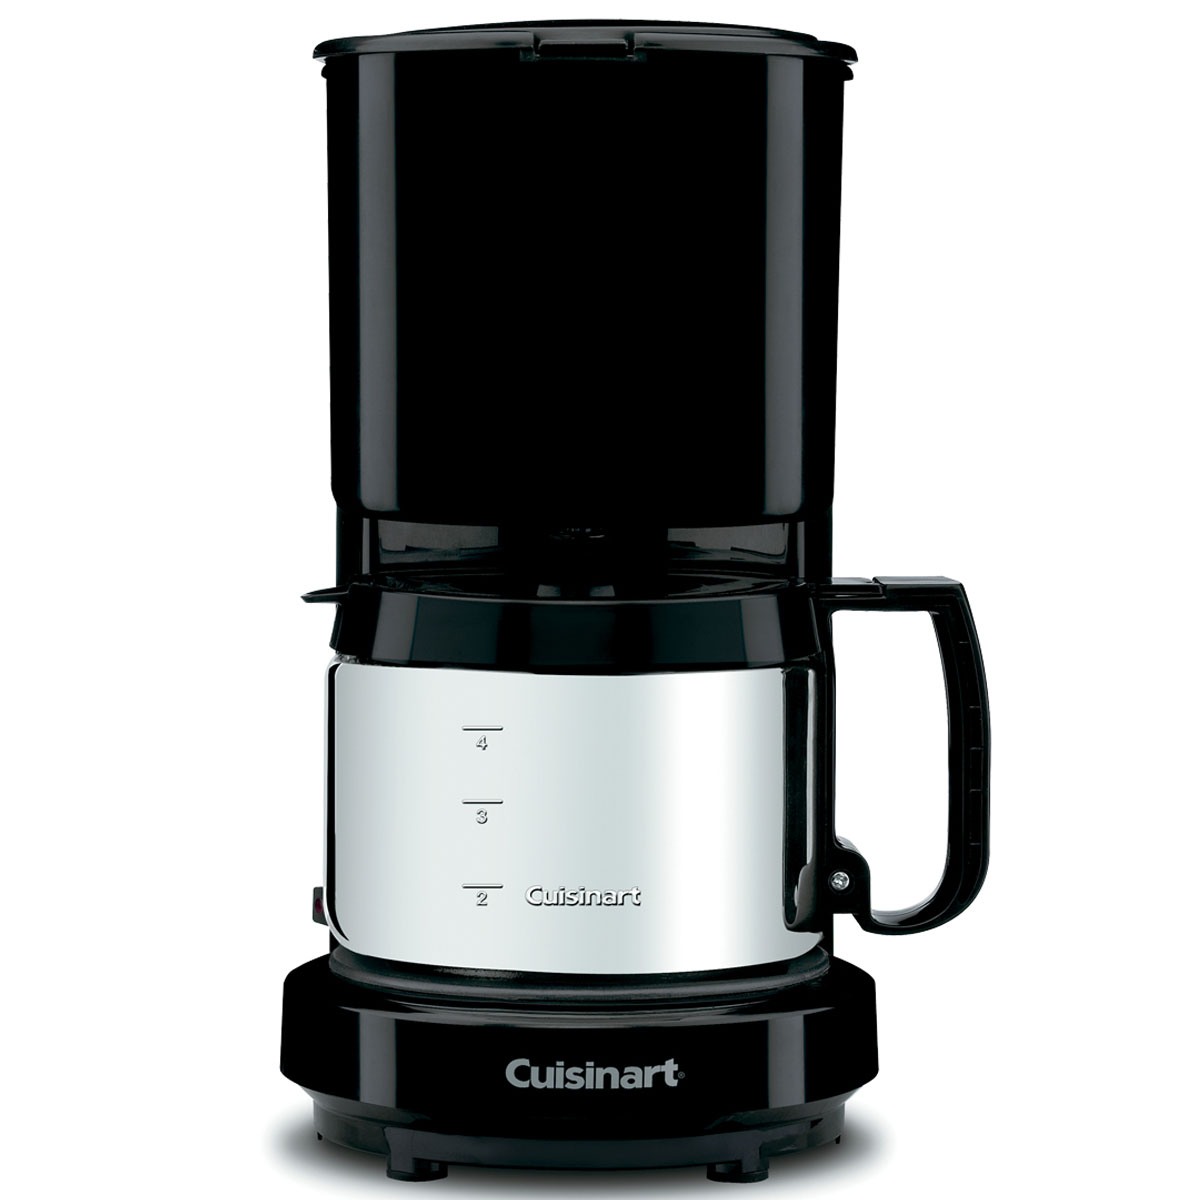 Cuisinart WCM08B 4-Cup Coffee Maker w/ Stainless Steel Carafe Black 4 Per Case Price Per Each